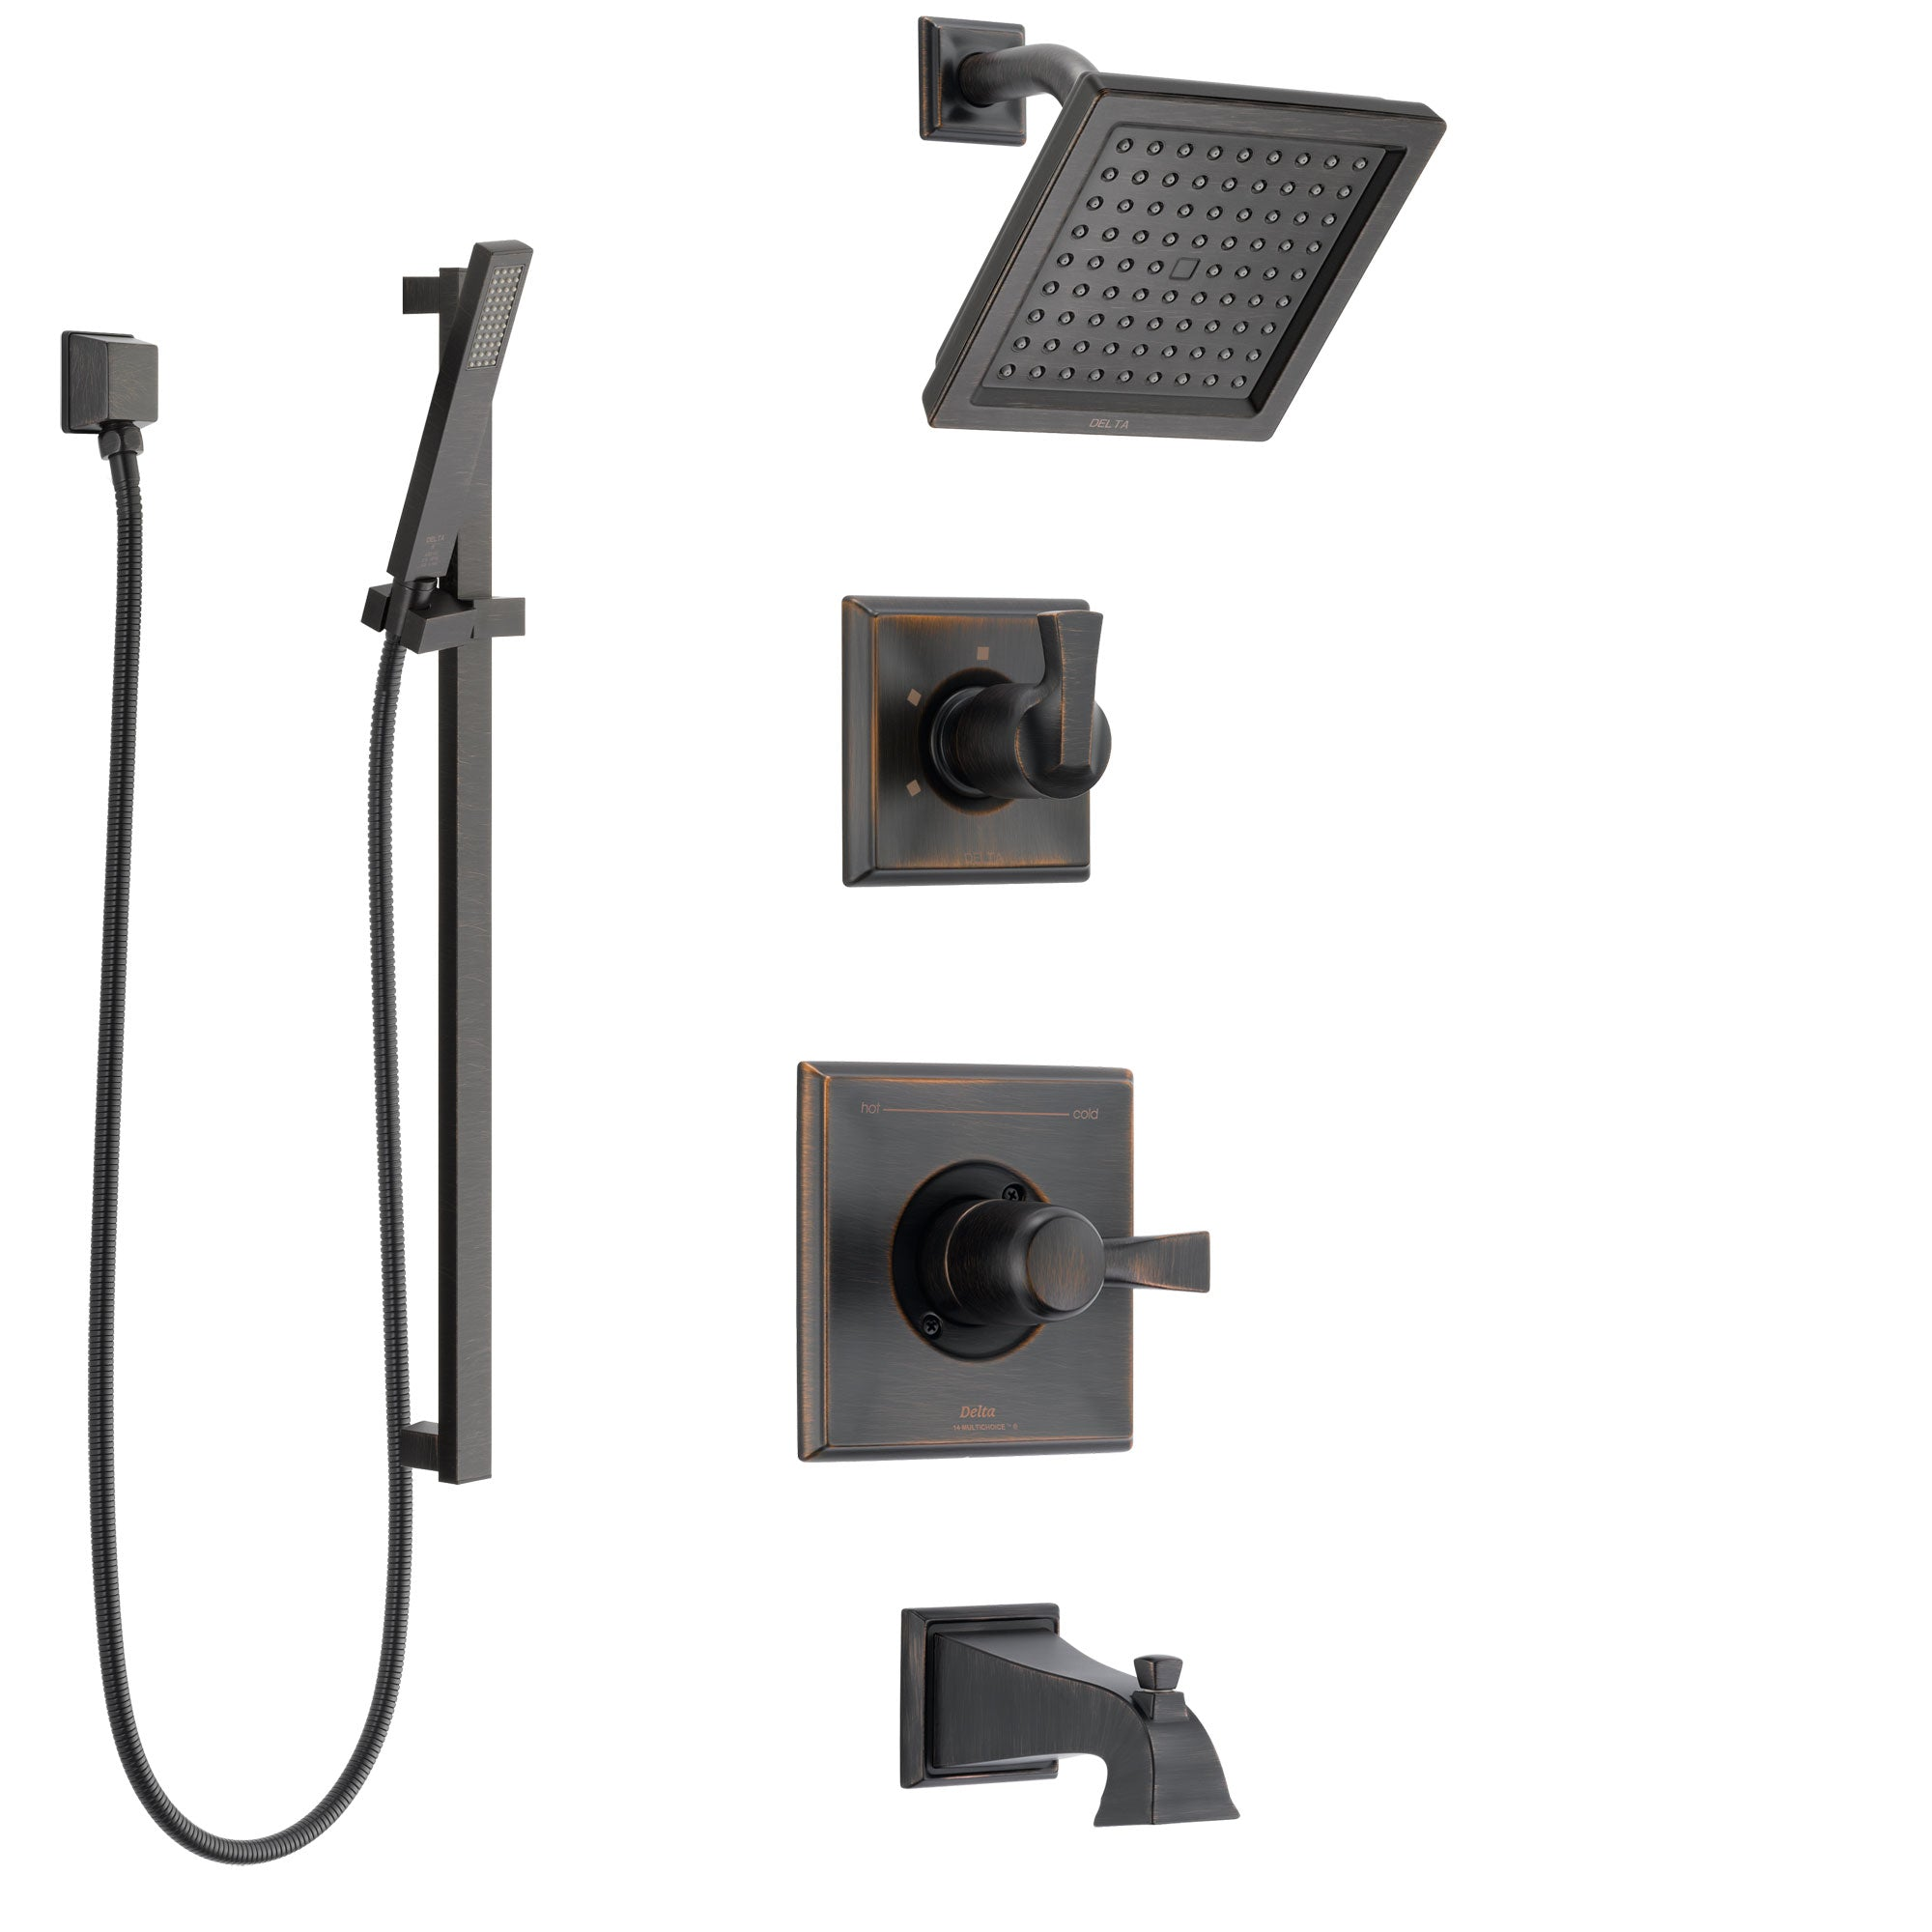 Delta Dryden Venetian Bronze Tub and Shower System with Control Handle, 3-Setting Diverter, Showerhead, and Hand Shower with Slidebar SS144511RB4